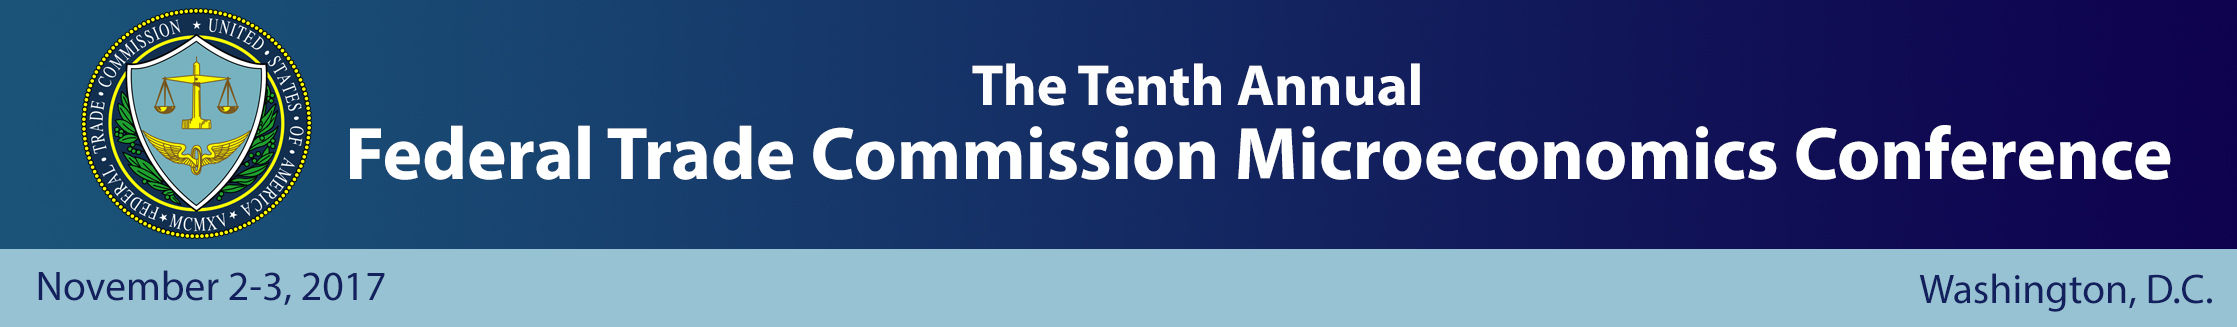 Tenth Annual Federal Trade Commission Microeconomics Conference